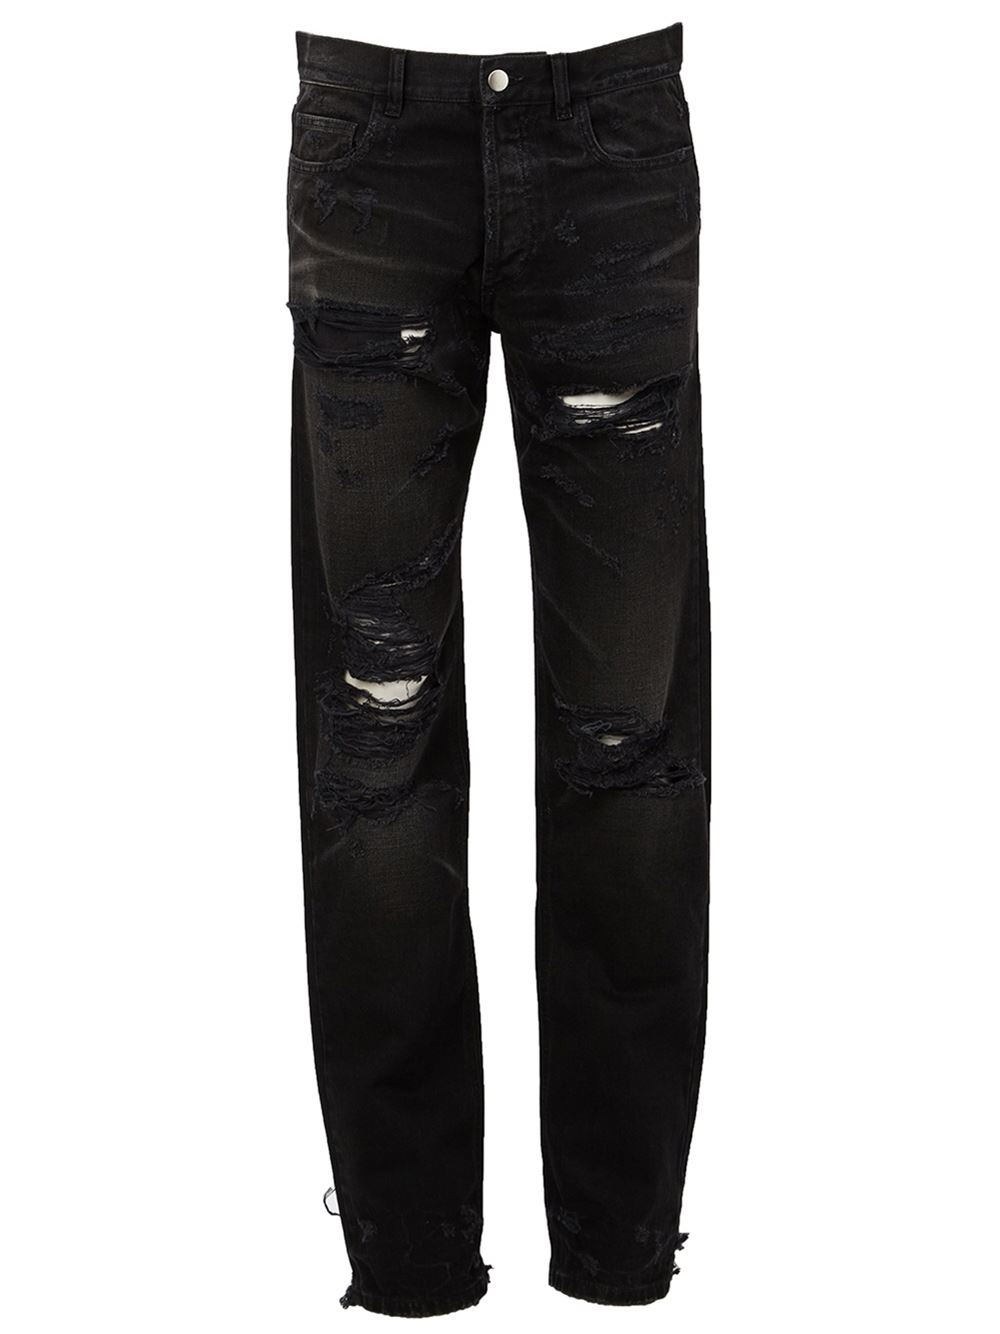 This type of distressed jeans for men combines all the best looks available into one incredibly stylish package. Pair these with a graphic tee or tank top and you're good to go. Destroyed biker jeans are an easy way to add a lot of style to a simple outfit.